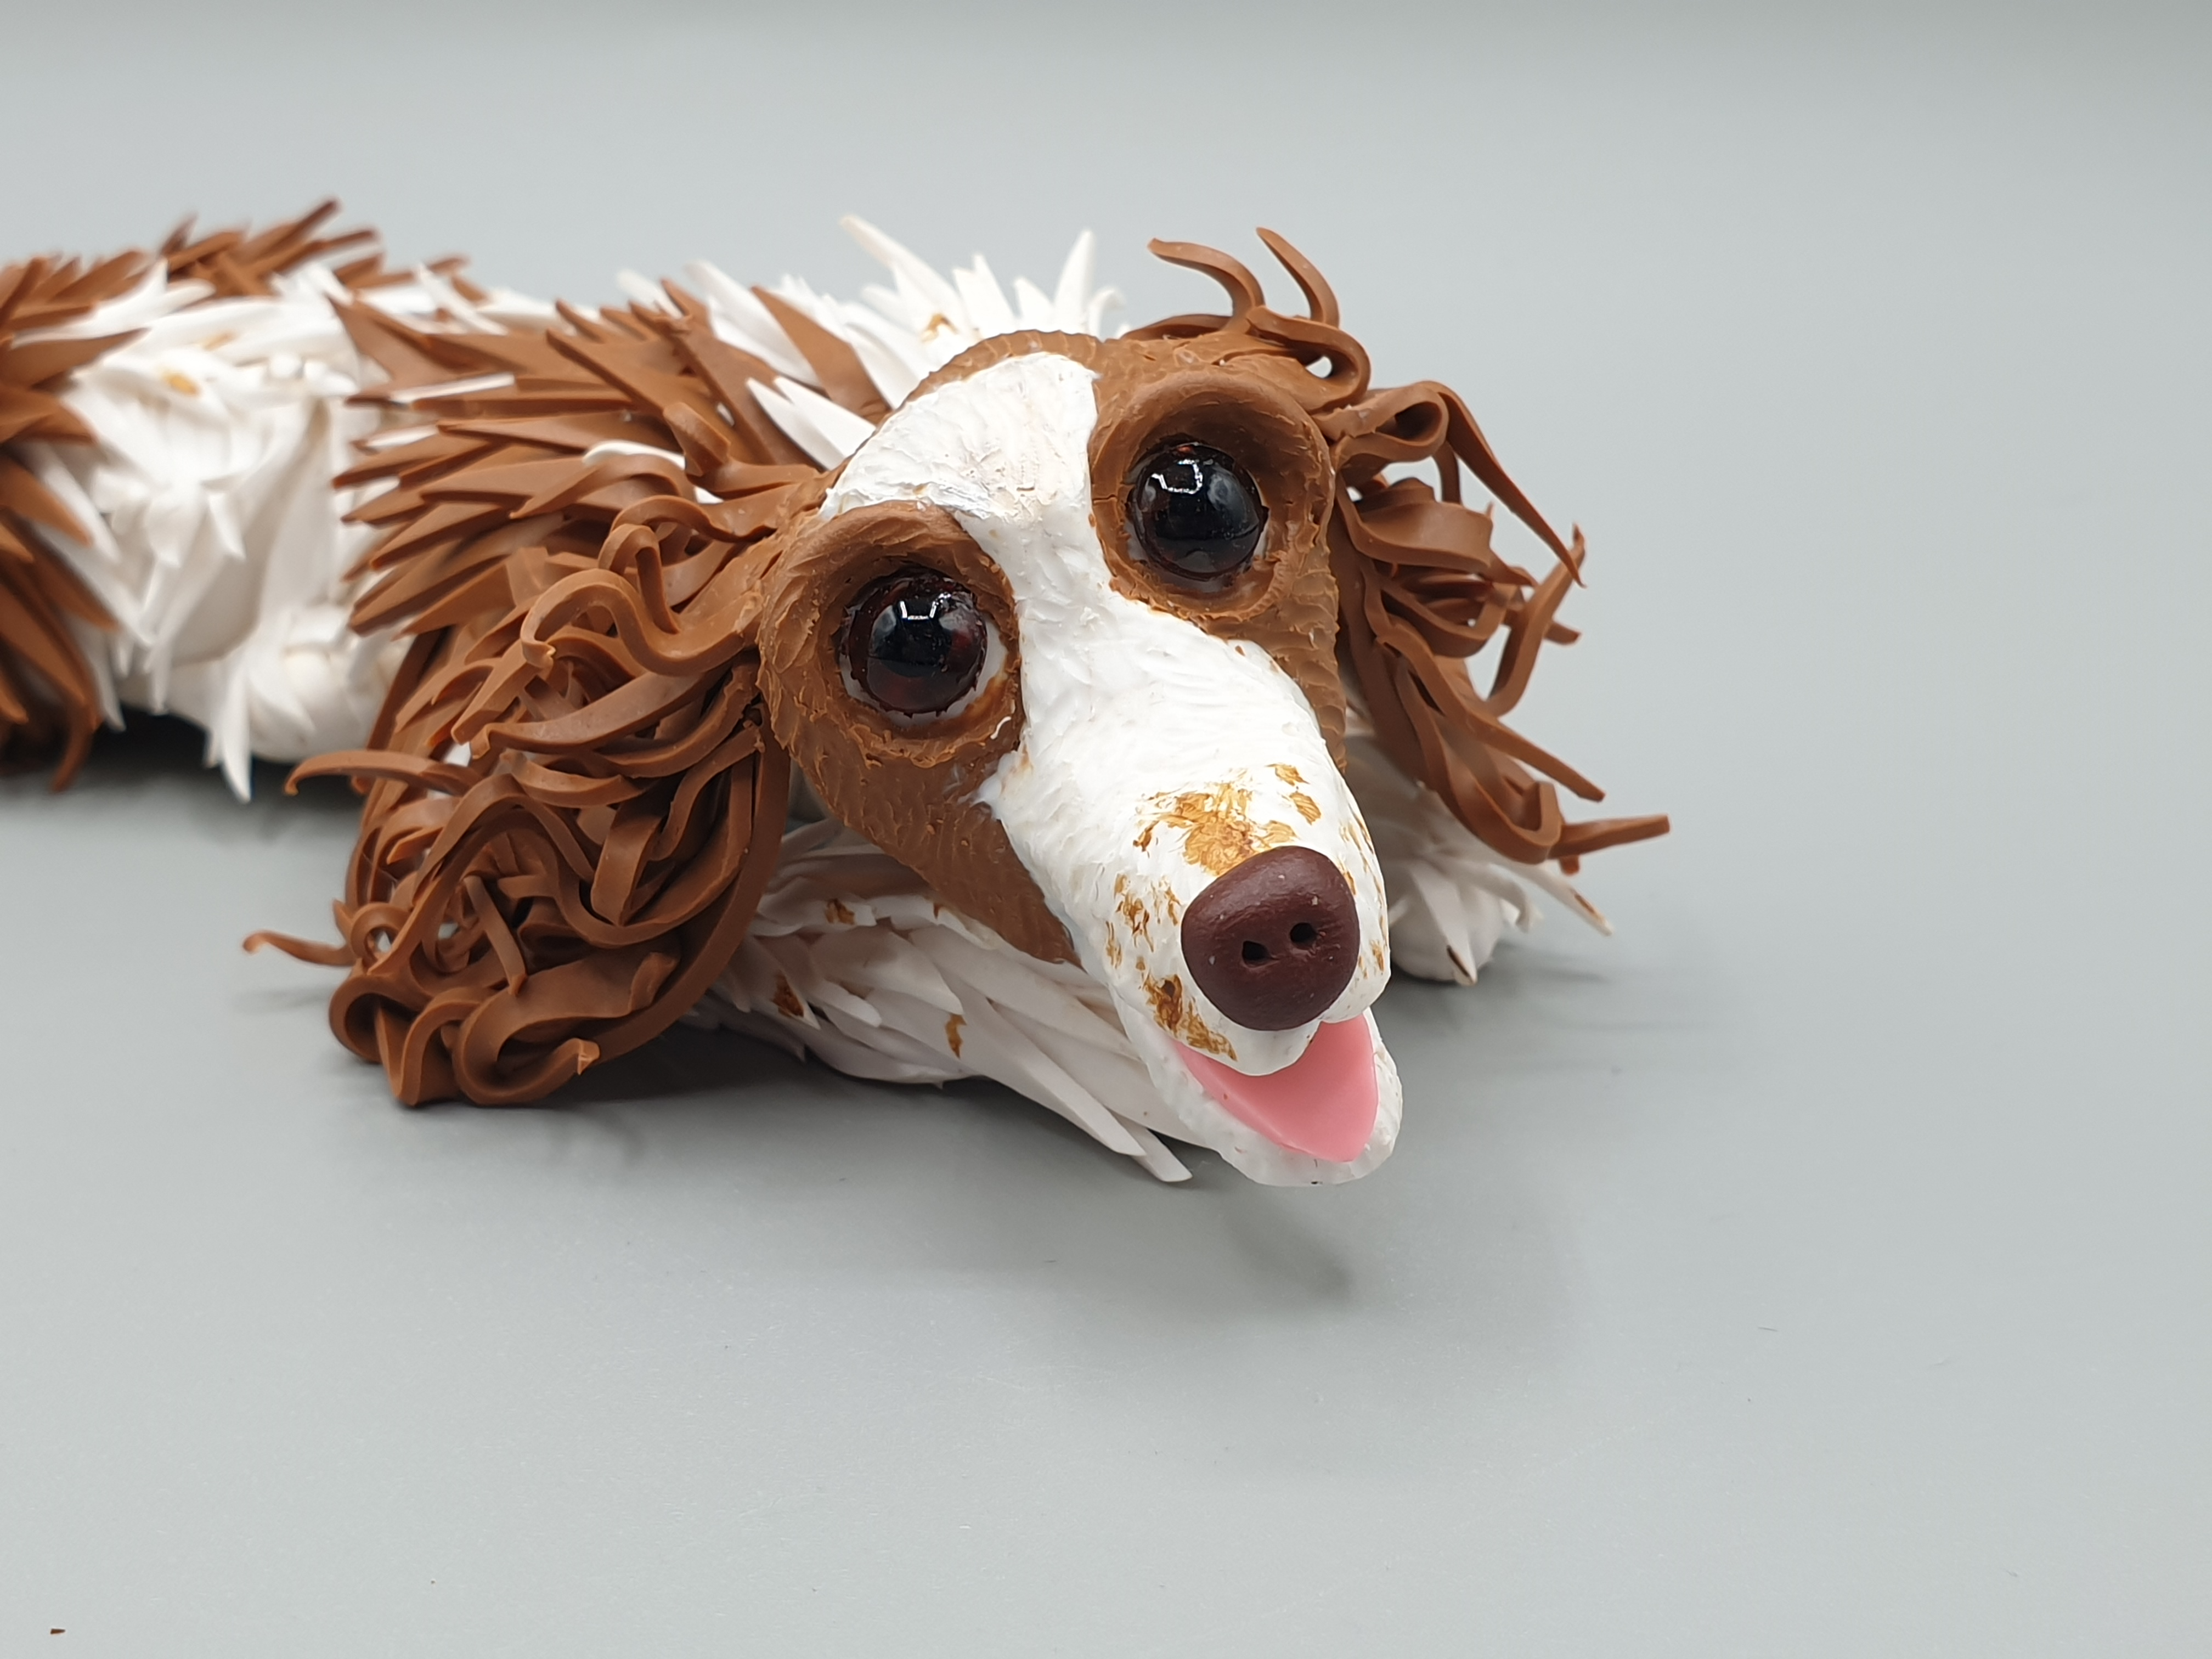 Meg the Welsh springer spaniel